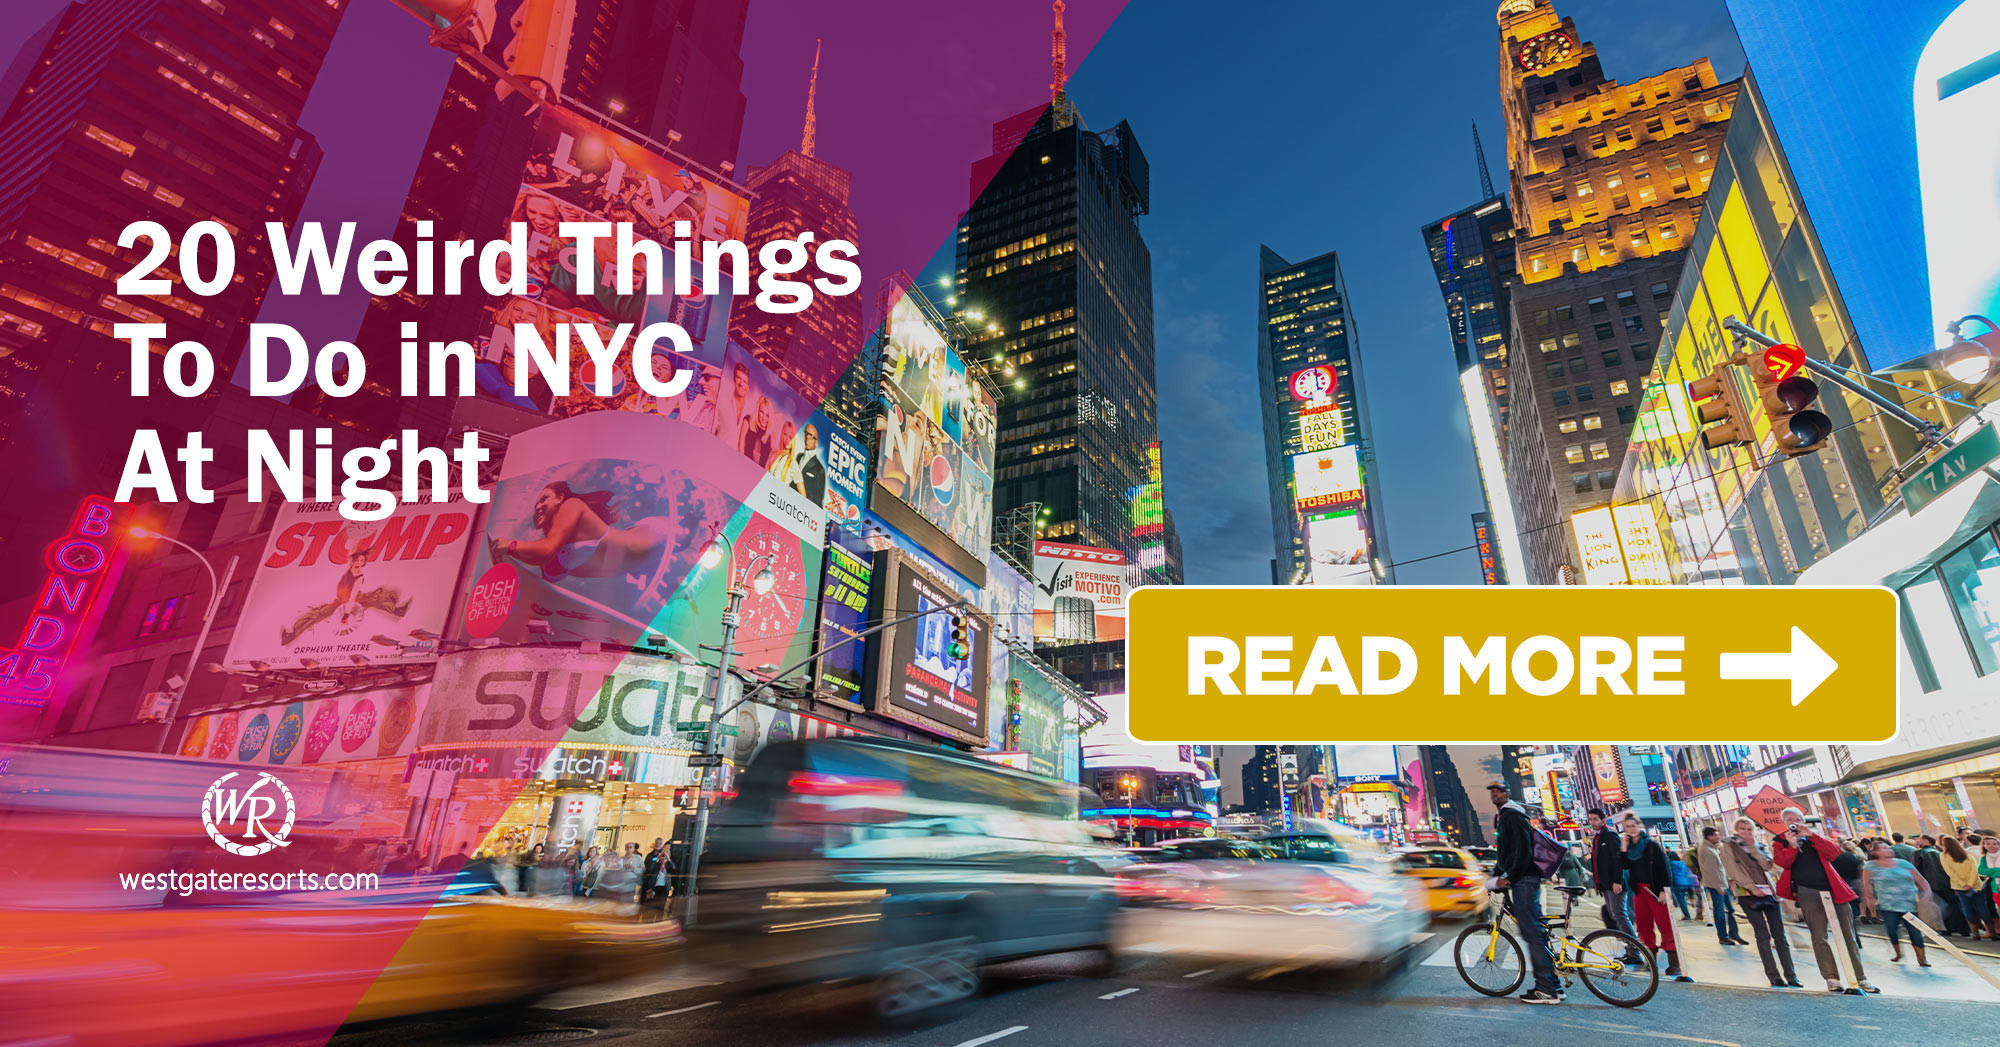 20 Weird Things To Do in NYC At Night! | Things To Do In NYC